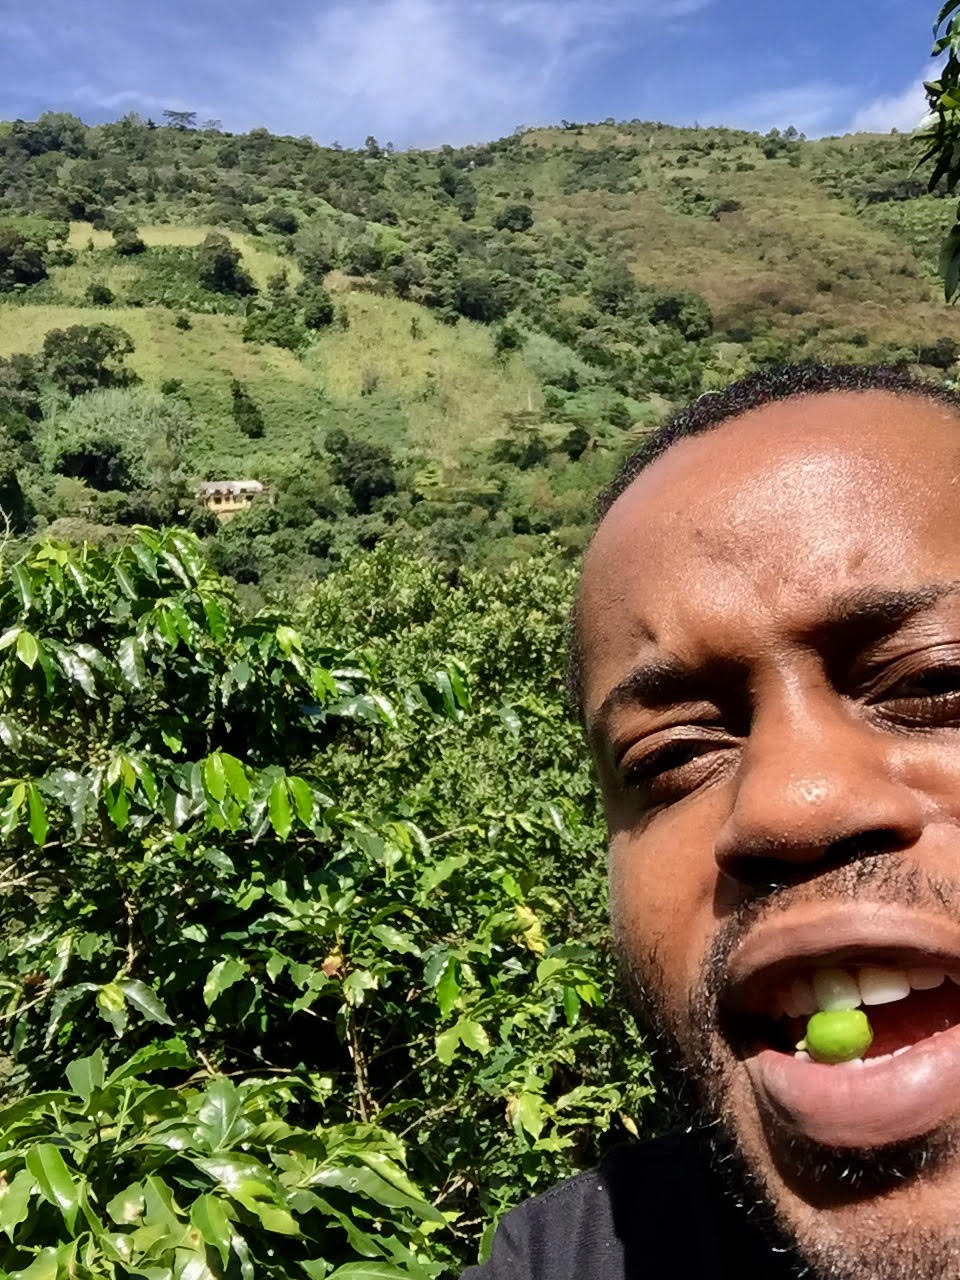 Chad's first visit to a coffee farm and tasting the crisp peppery favor of an unripe coffee cherry.